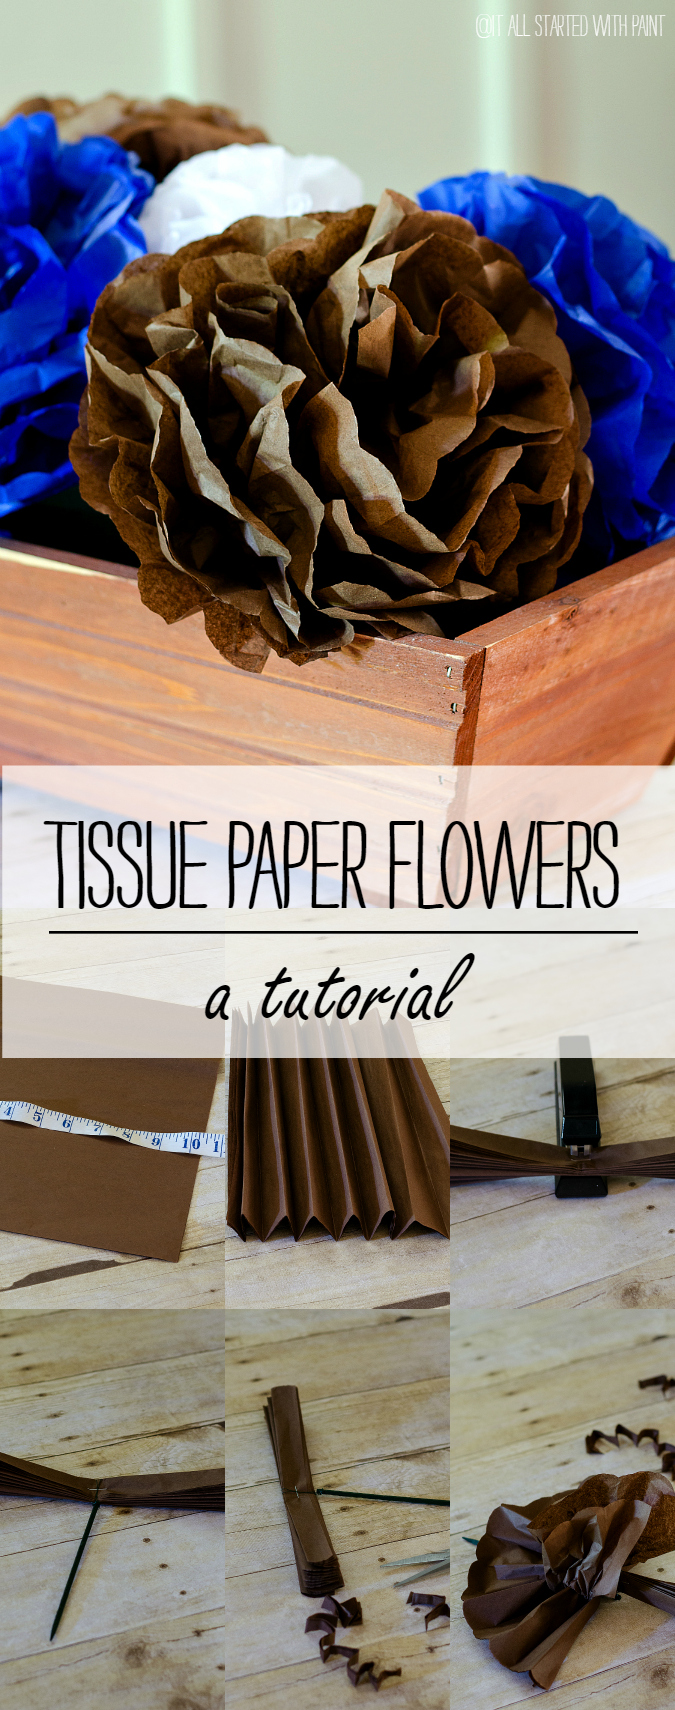 Tissue Paper Flowers: How To Make Tissue Paper Flowers